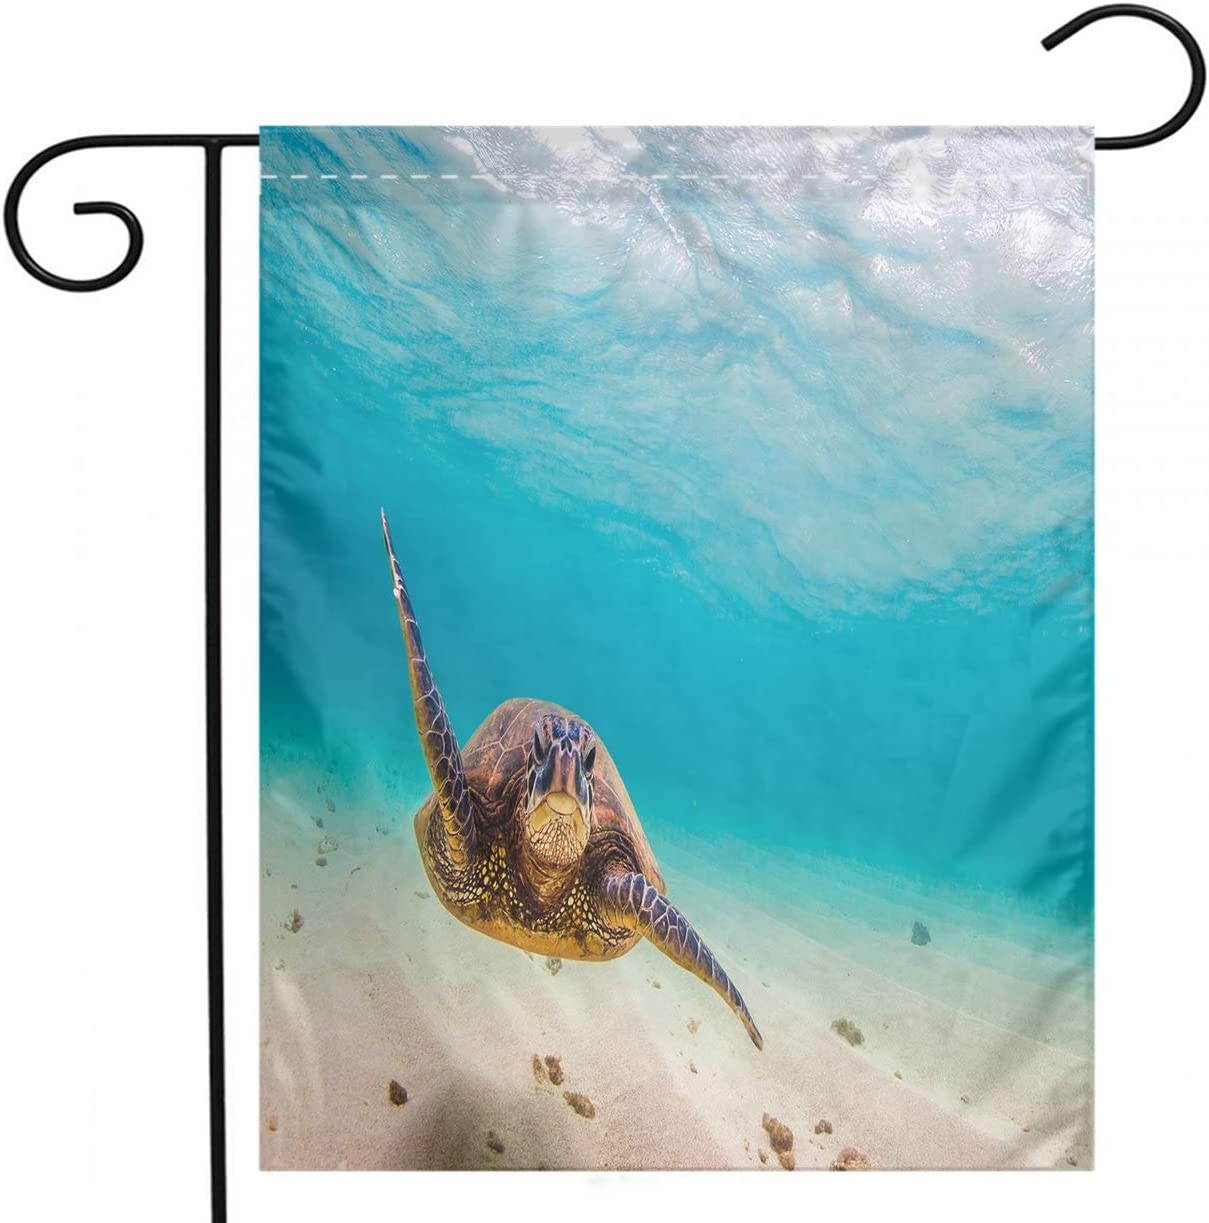 Hawaiian Garden Flag, Custom Double Sided Seasonal Garden Flag Endangered Hawaiian Green Sea Turtle Cruising In The Warm Waters Of The Garden Flag For Party Holiday Home Garden Decor Linen 12x18 Inch